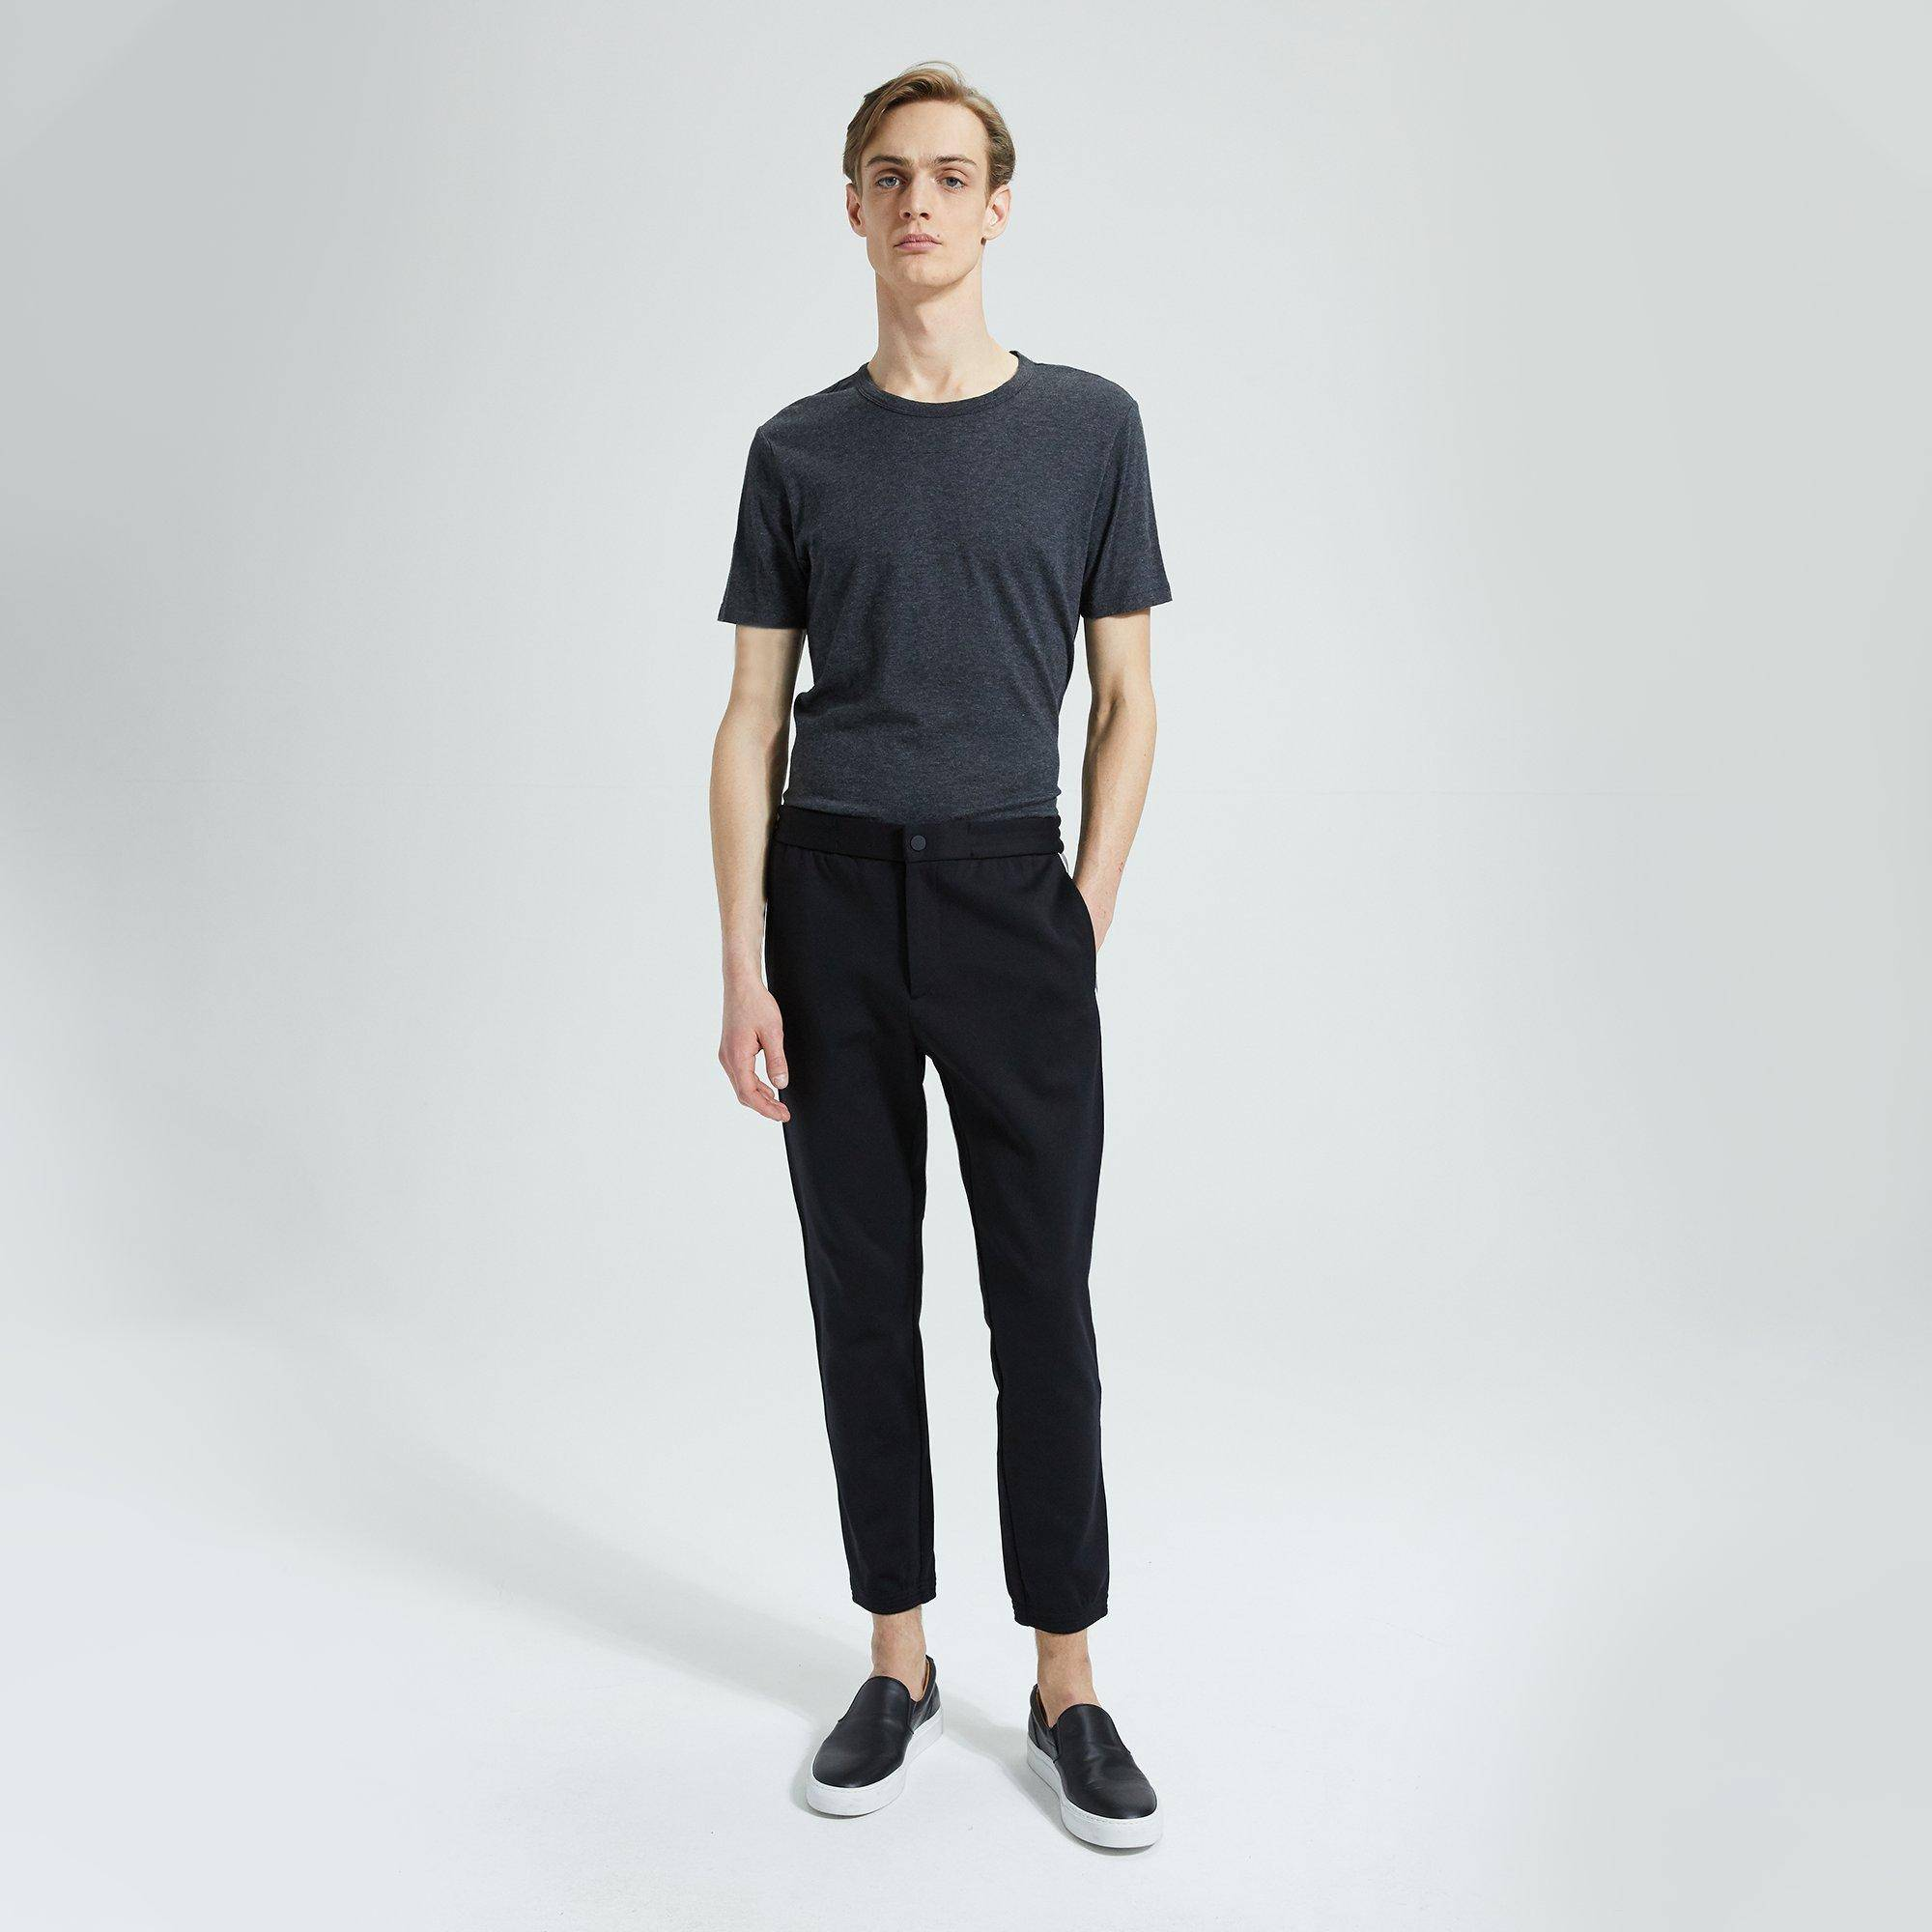 Theory Tech Face Ponte Terrance Pant  - BLACK - male - Size: Extra Small